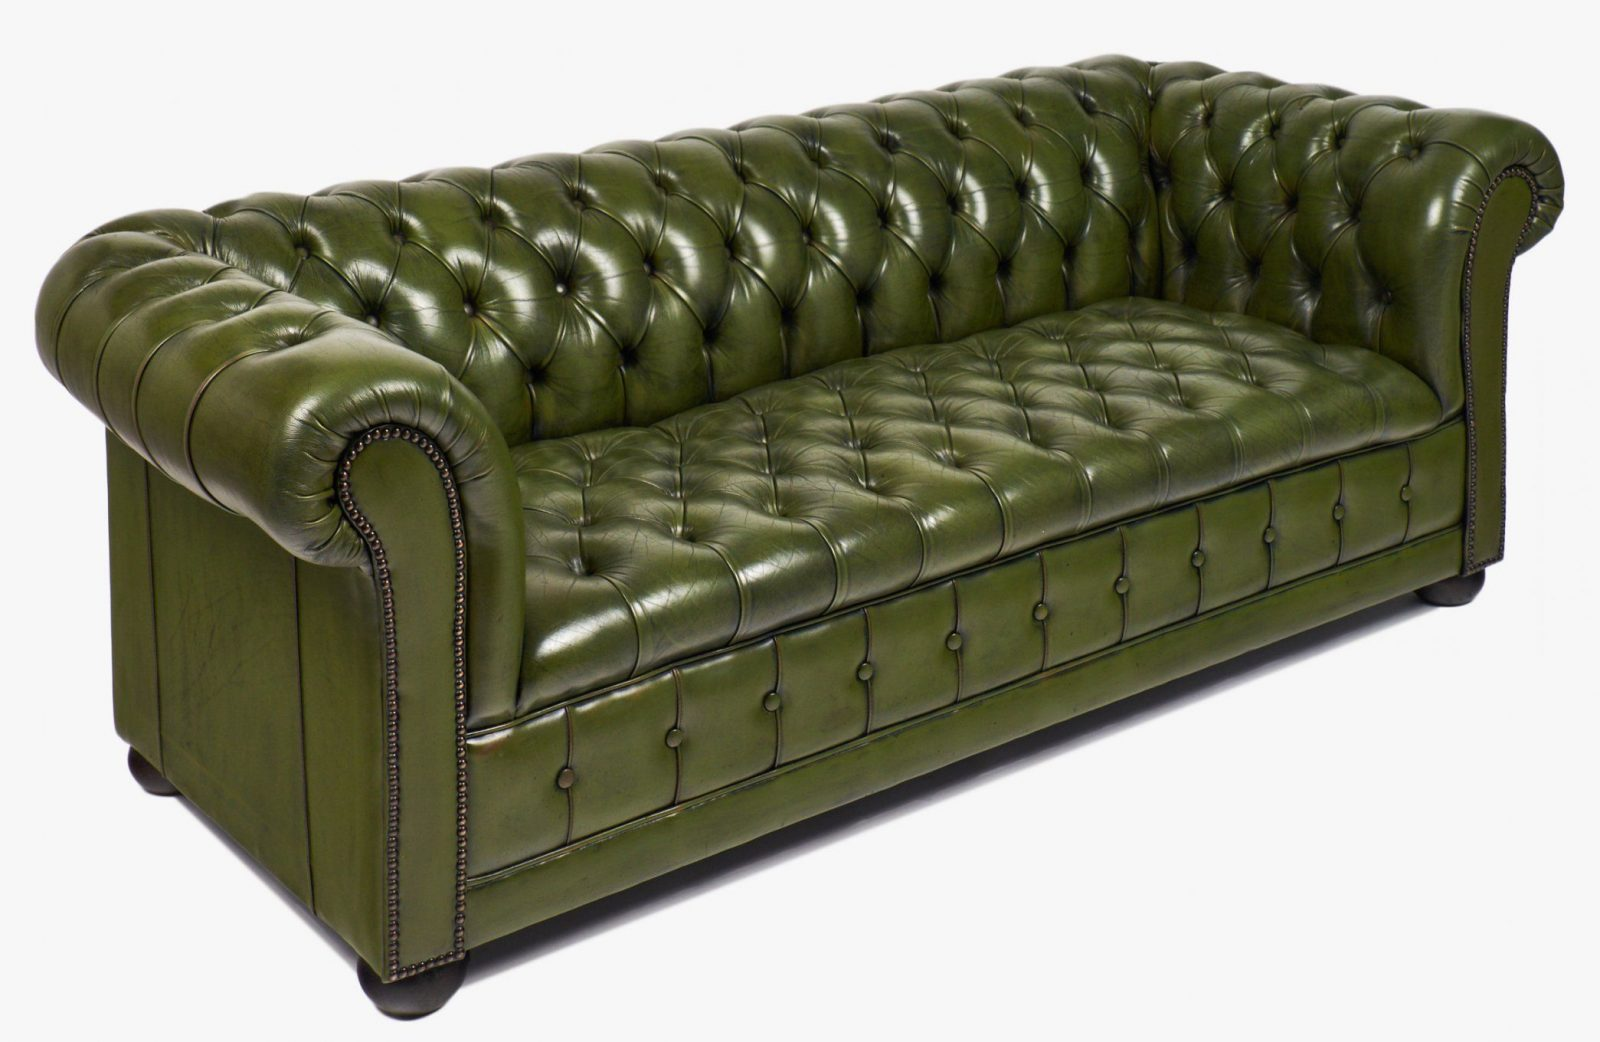 Vintage Green Leather Chesterfield Sofa  Jean Marc Fray von Green Leather Chesterfield Sofa Bild